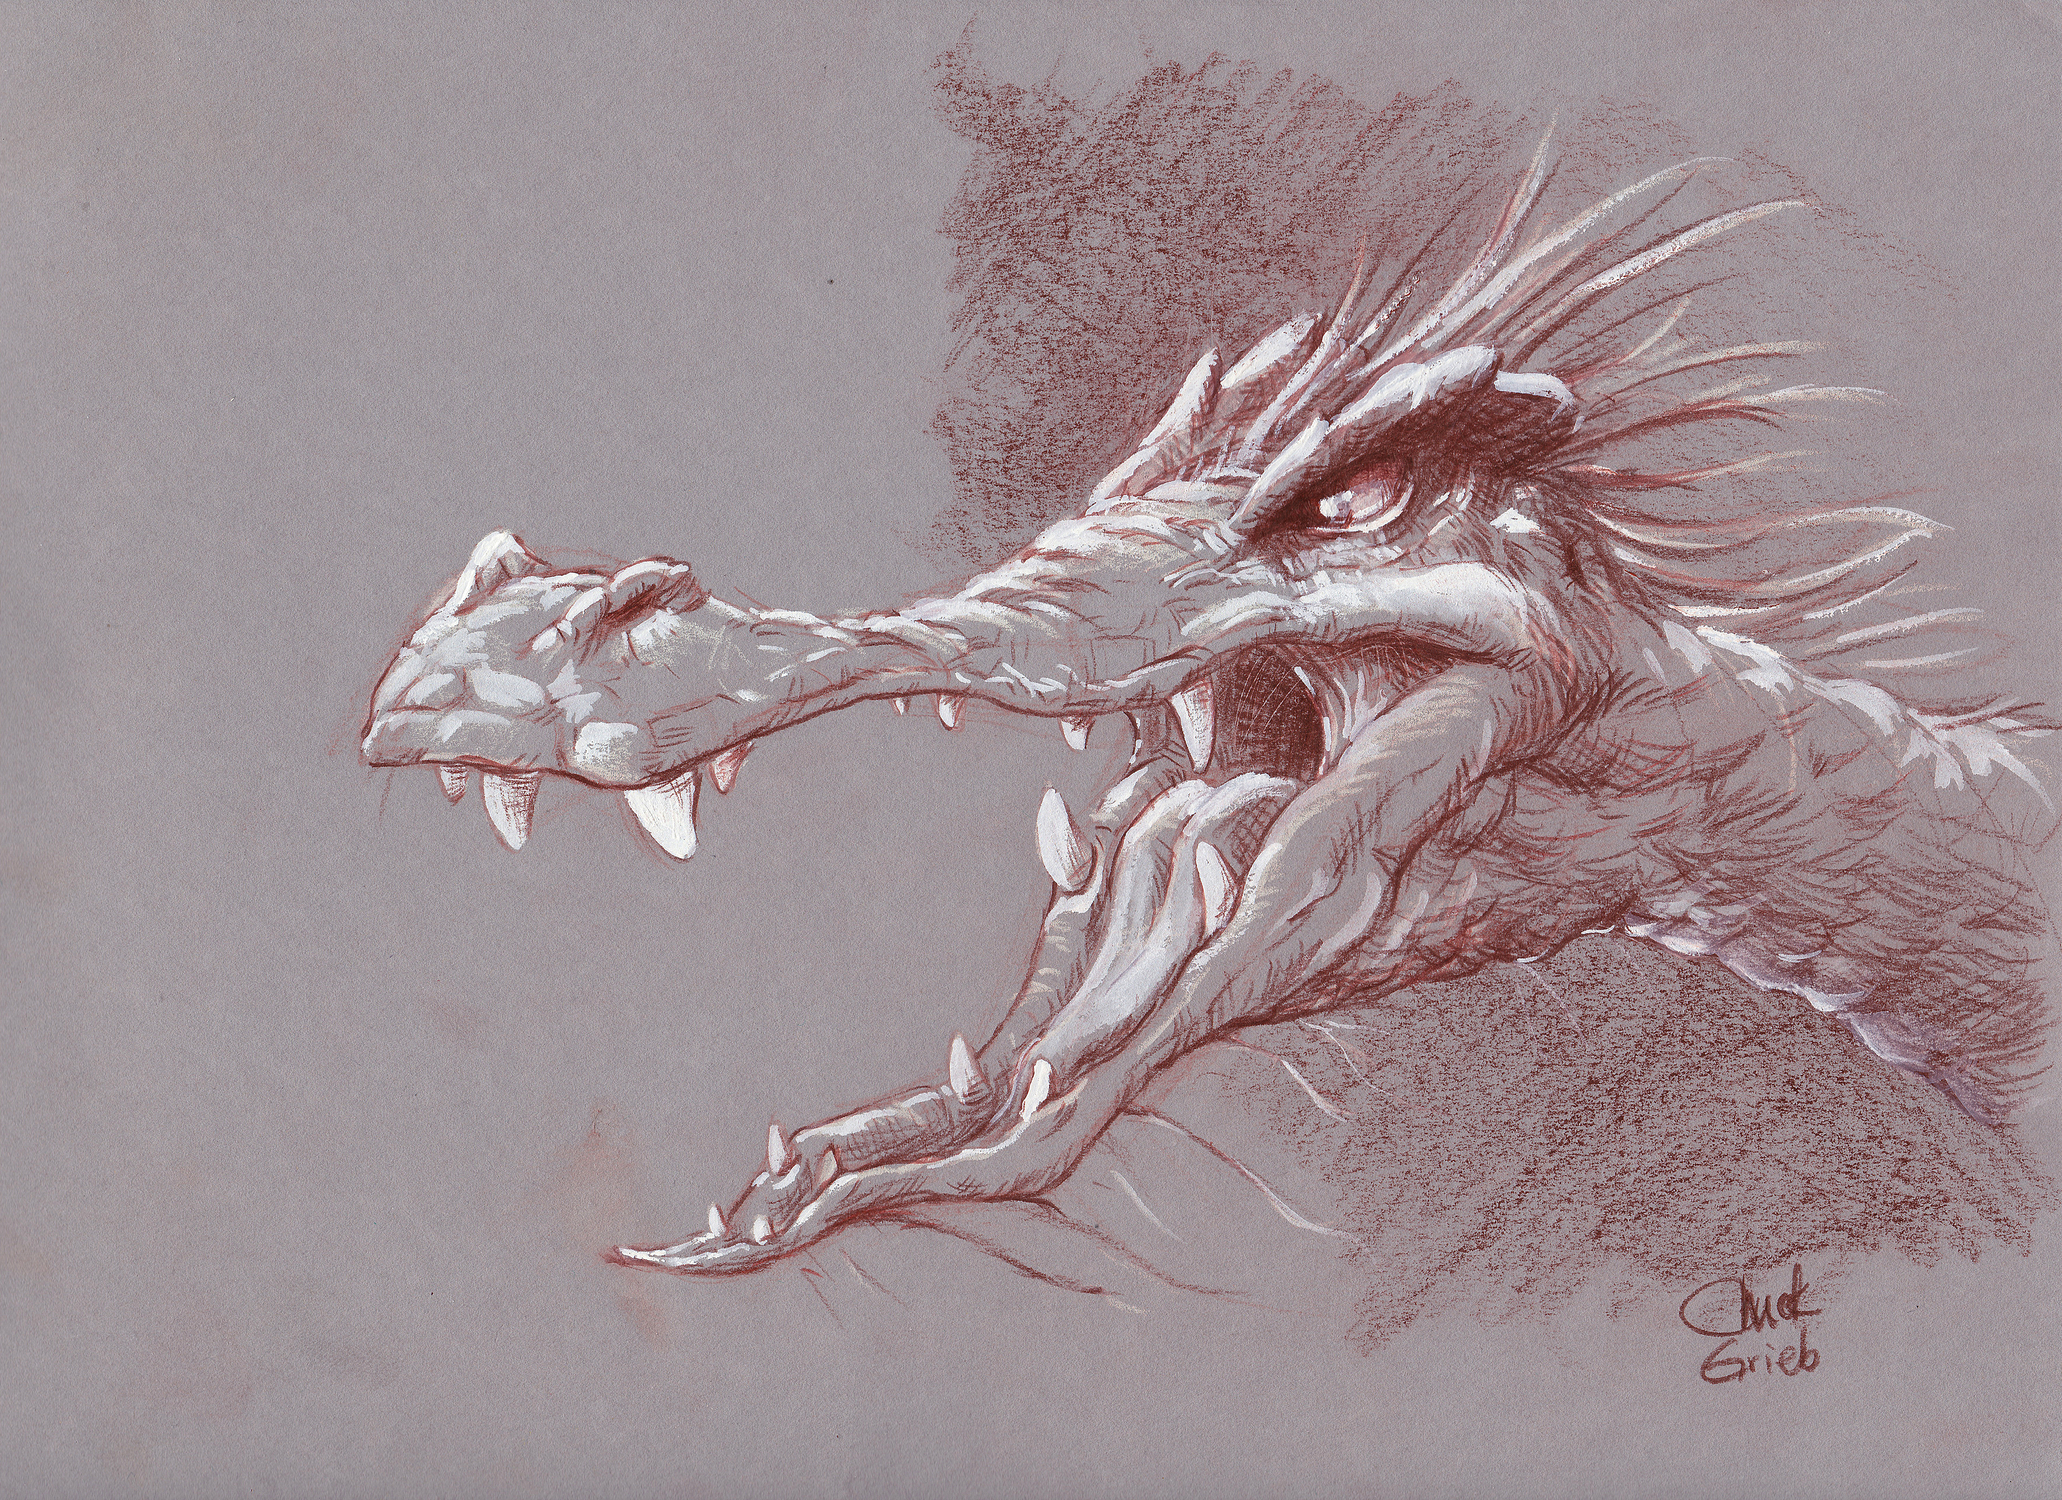 Young dragon Artwork by Chuck Grieb